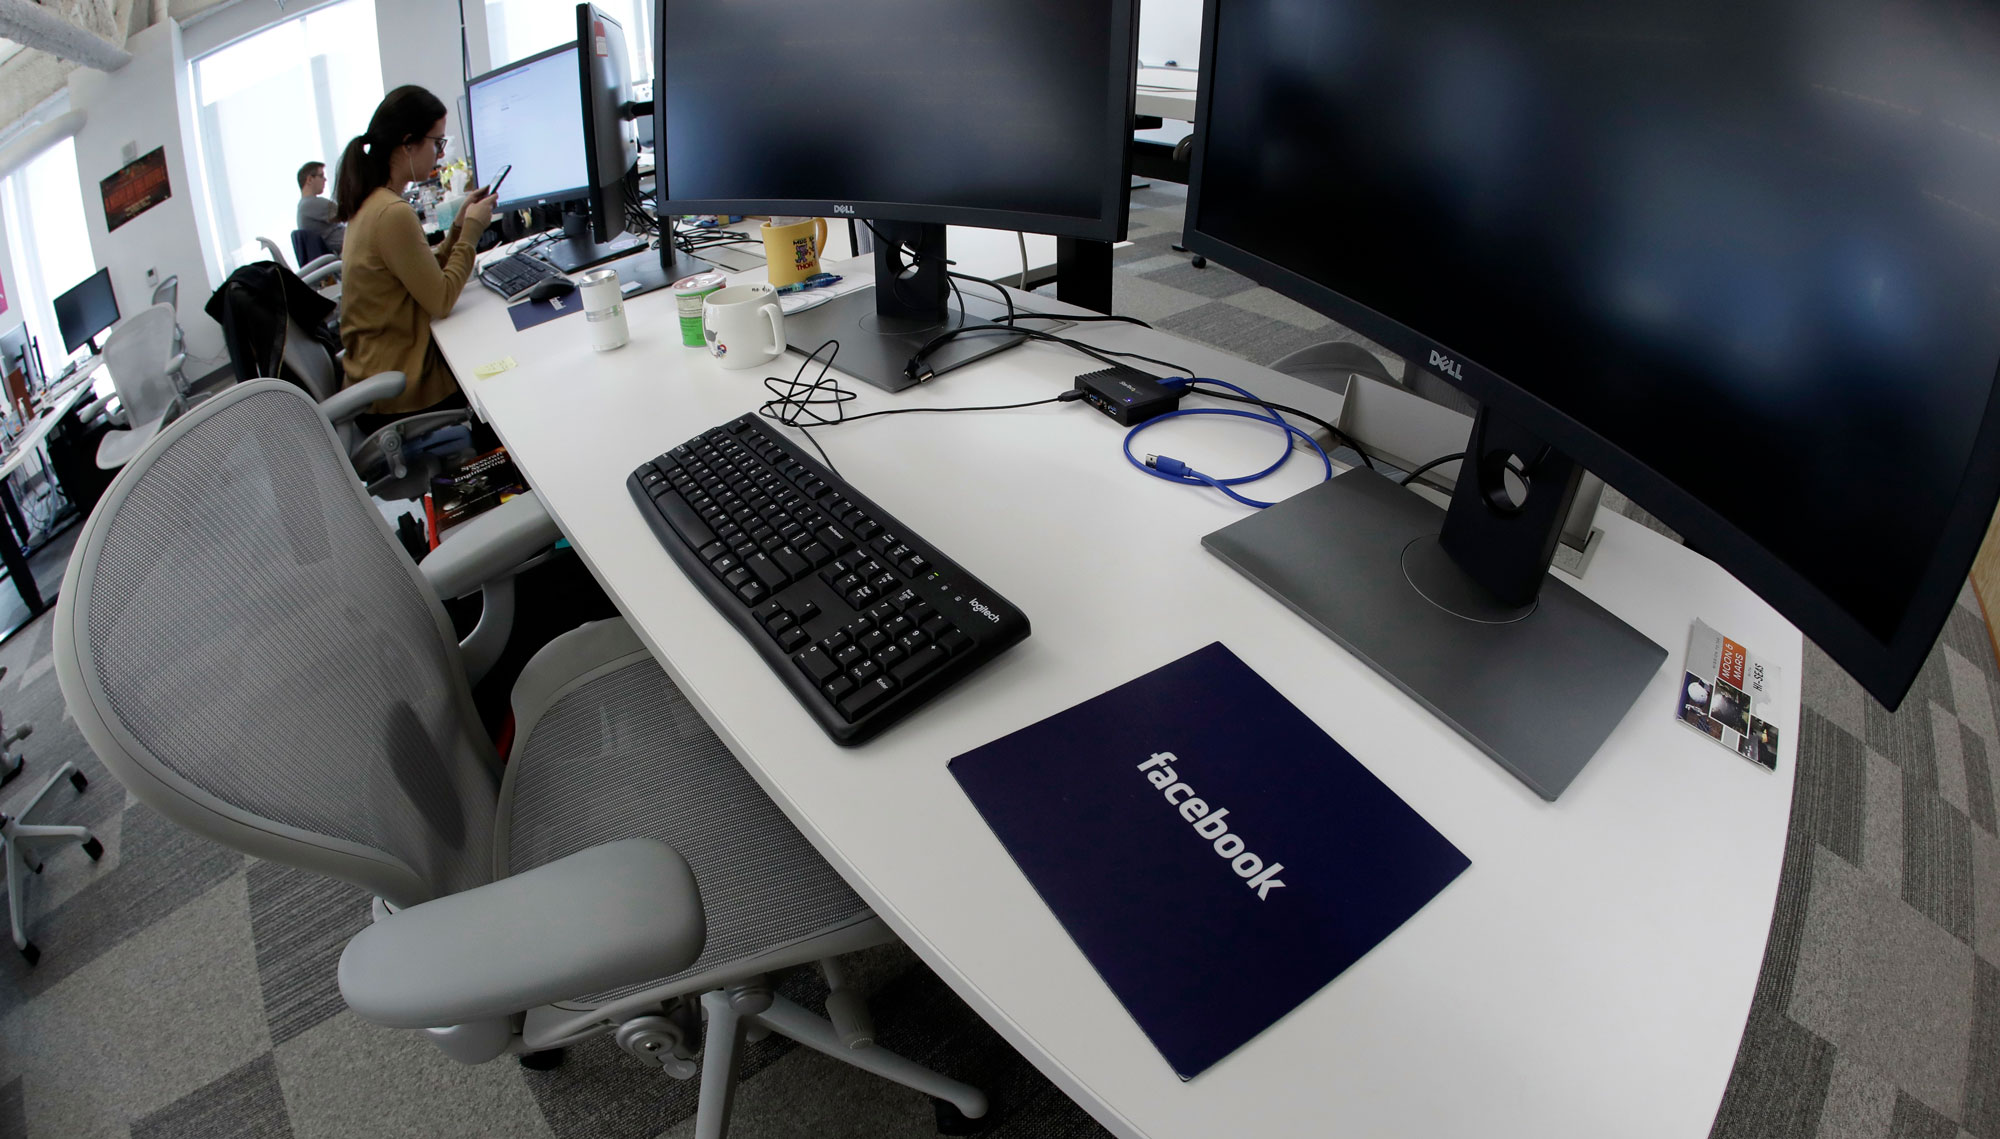 A Facebook office